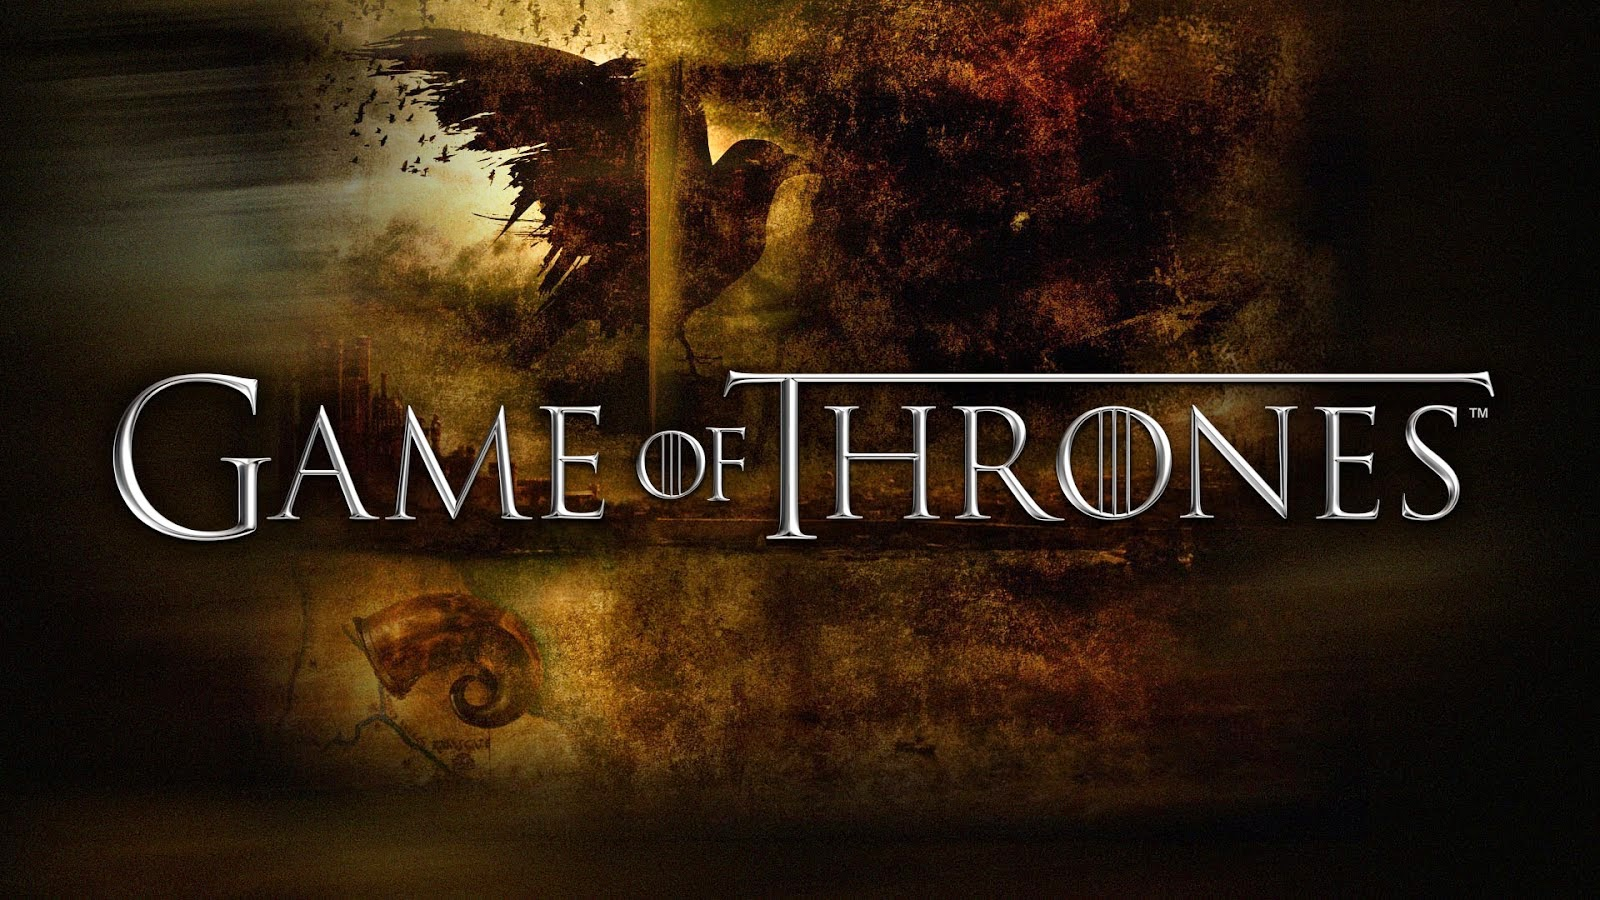 game of thrones season 2 episode 1 online free